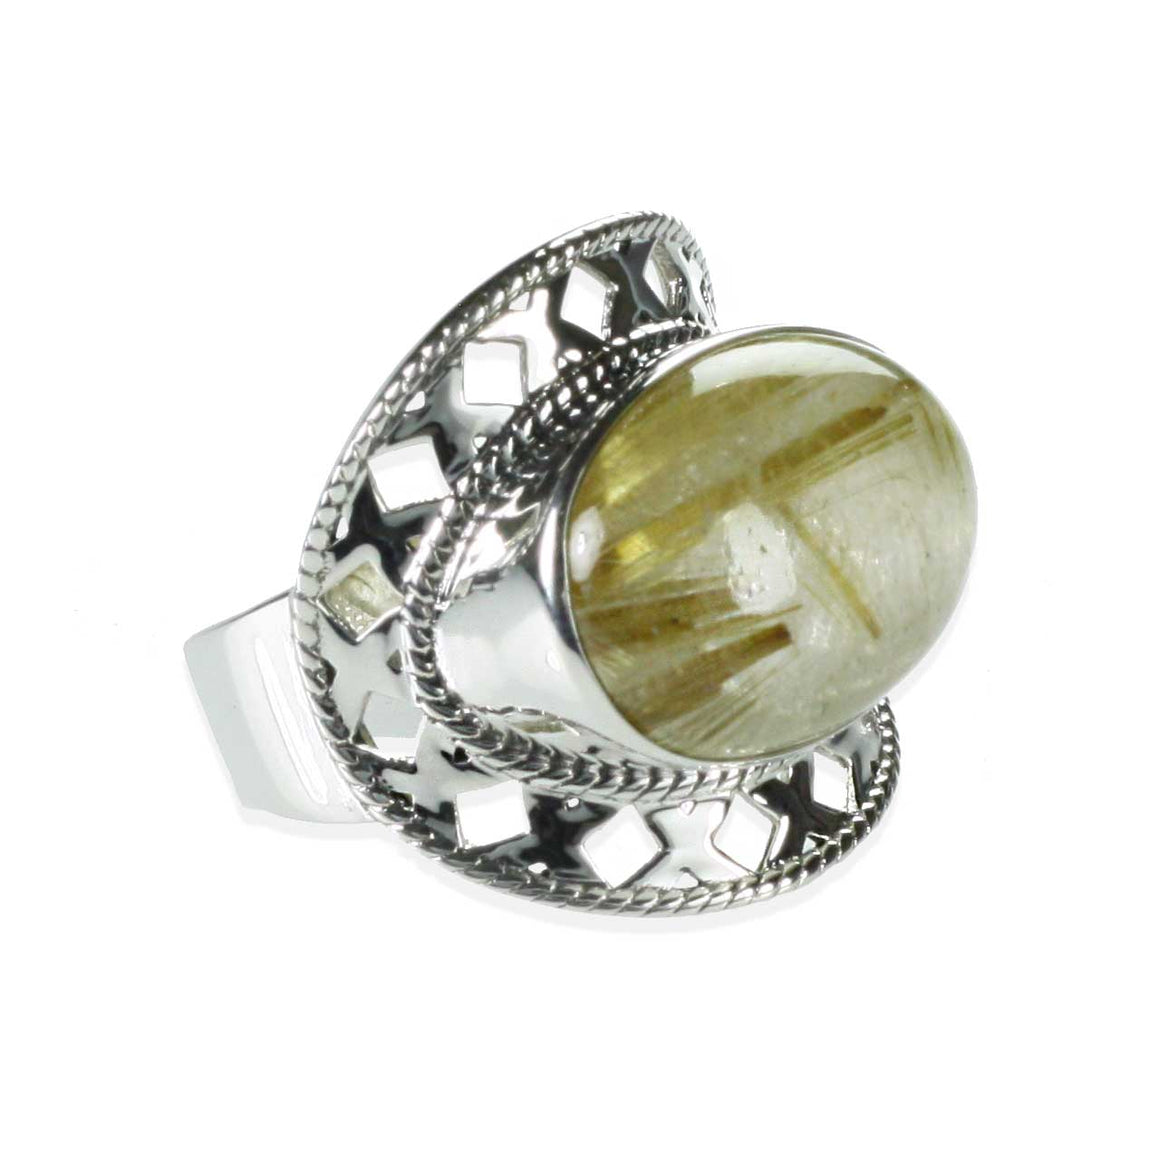 Golden Rutilated Quartz Lattice Ring